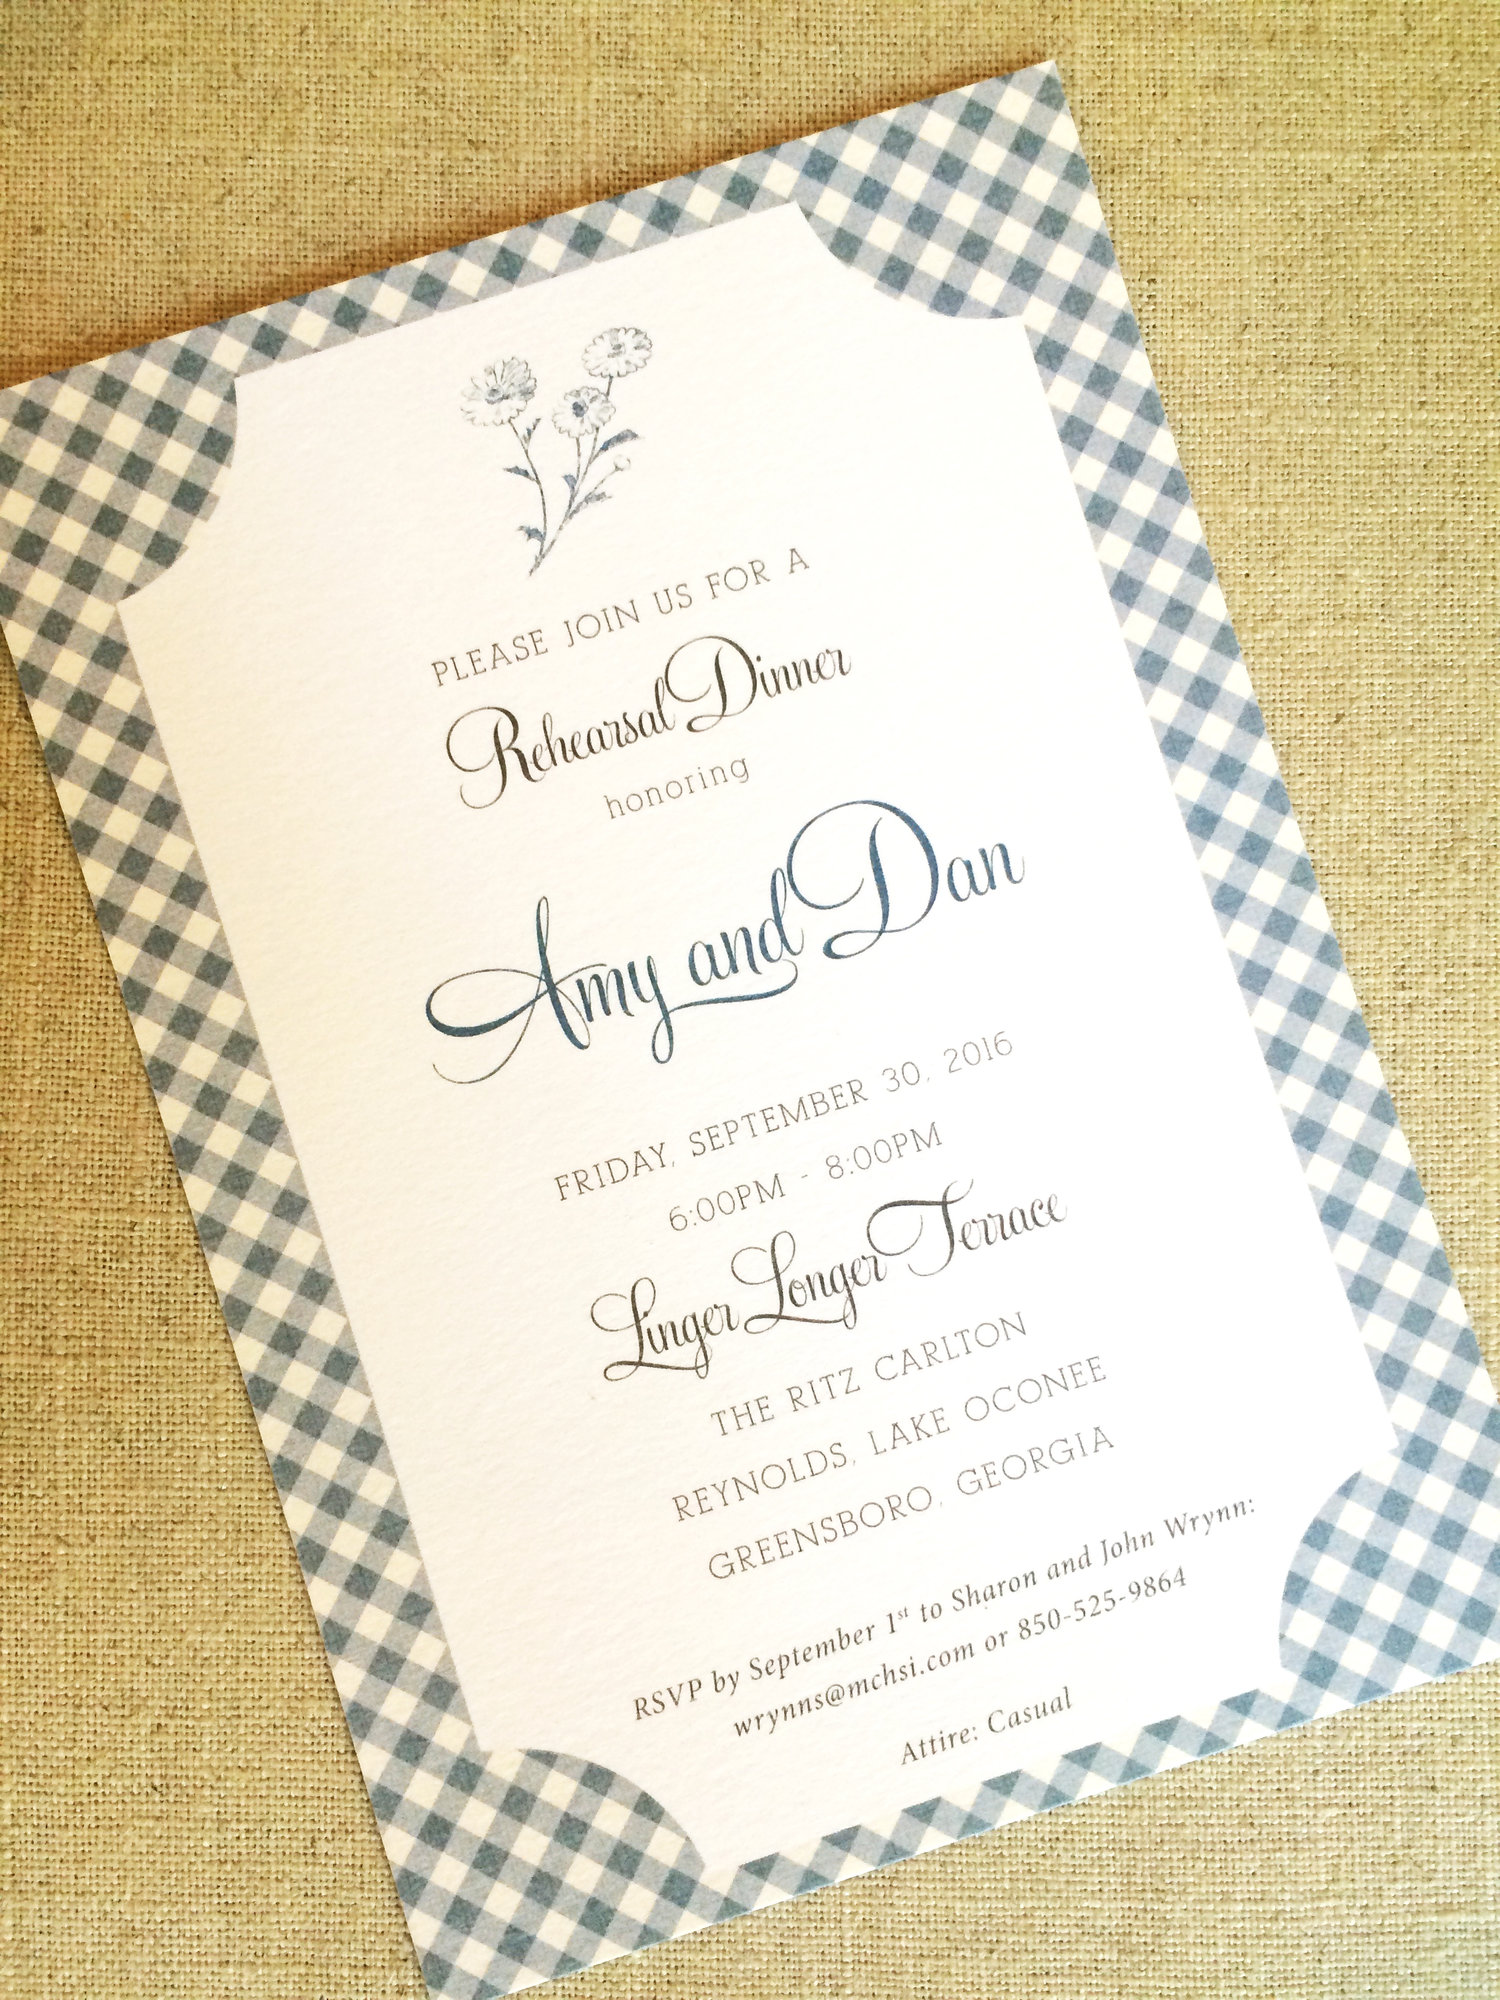 We Got Married Party Invitations